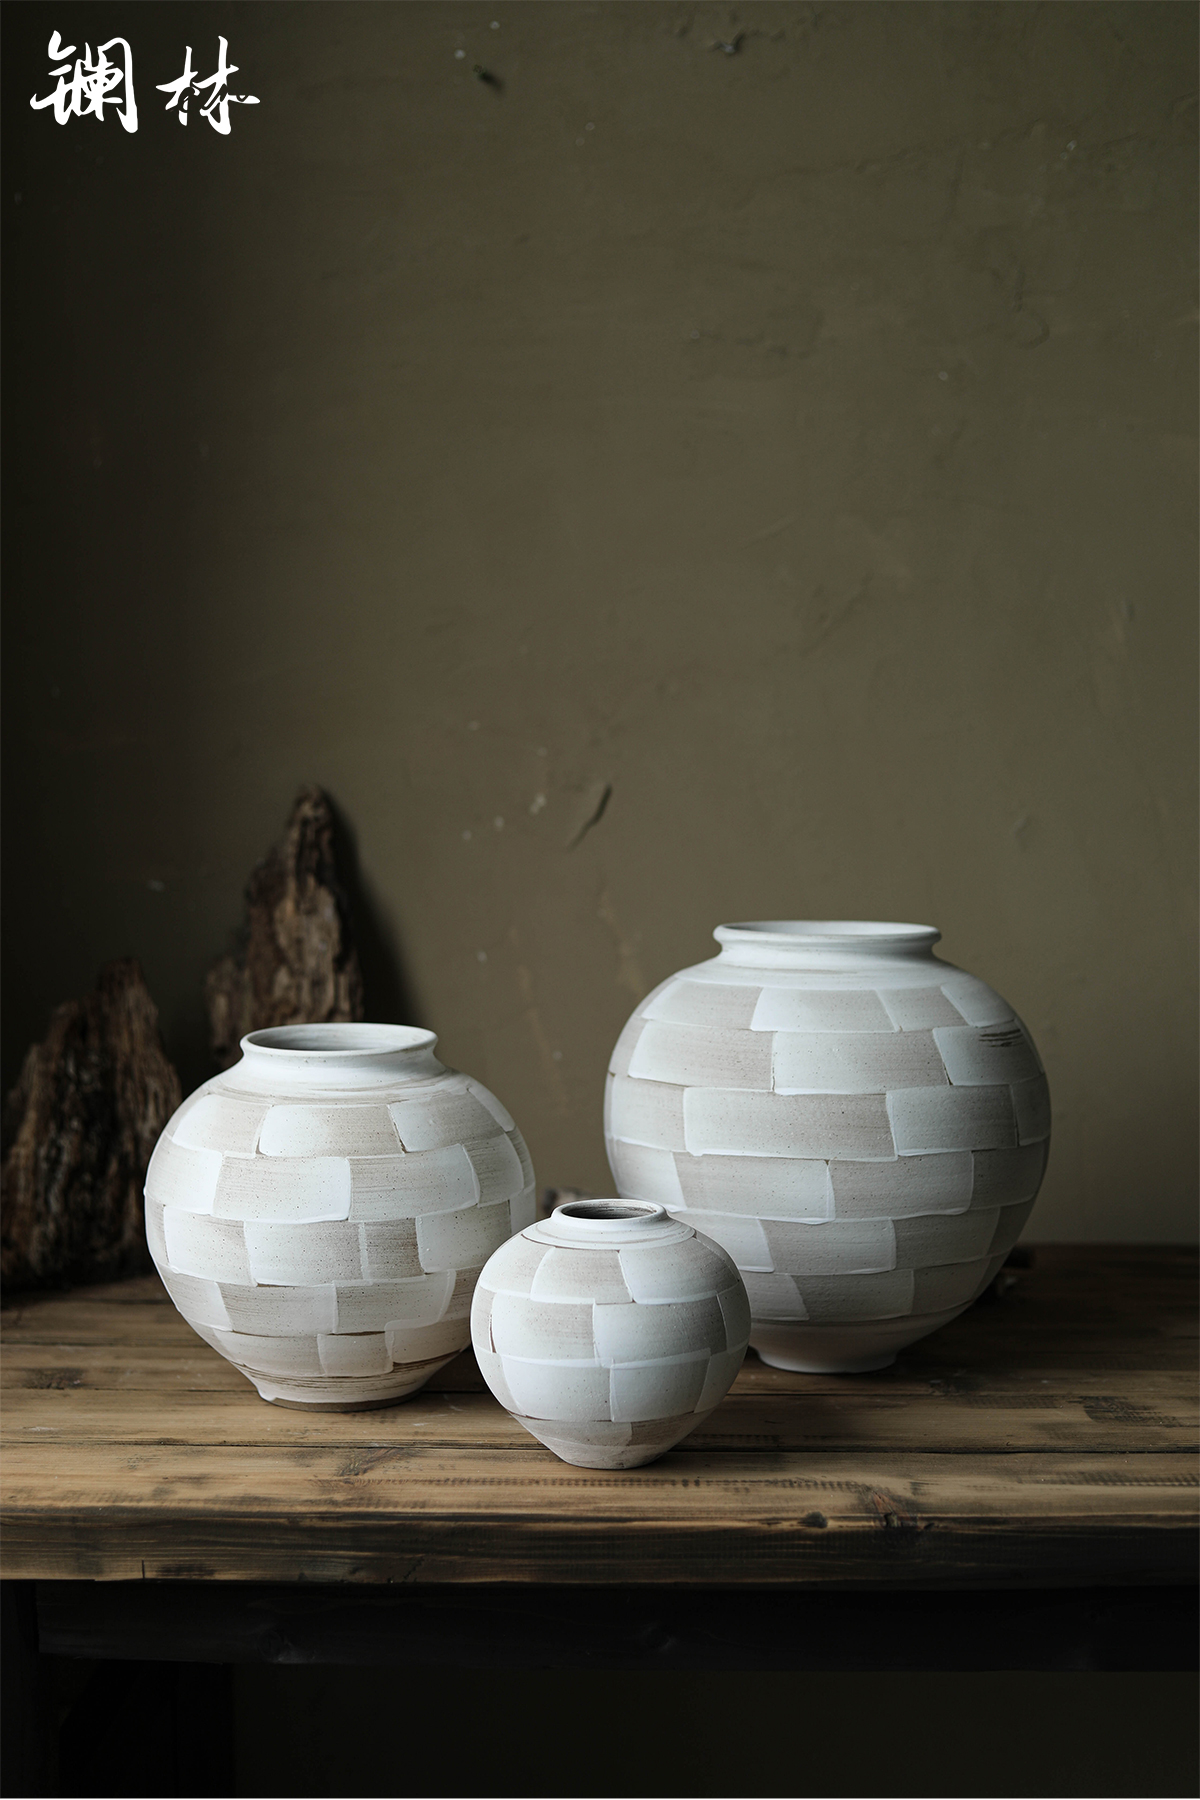 Manual insert ceramic vase restoring ancient ways artists space flower decorations furnishing articles Chinese dried flowers home home stay facility